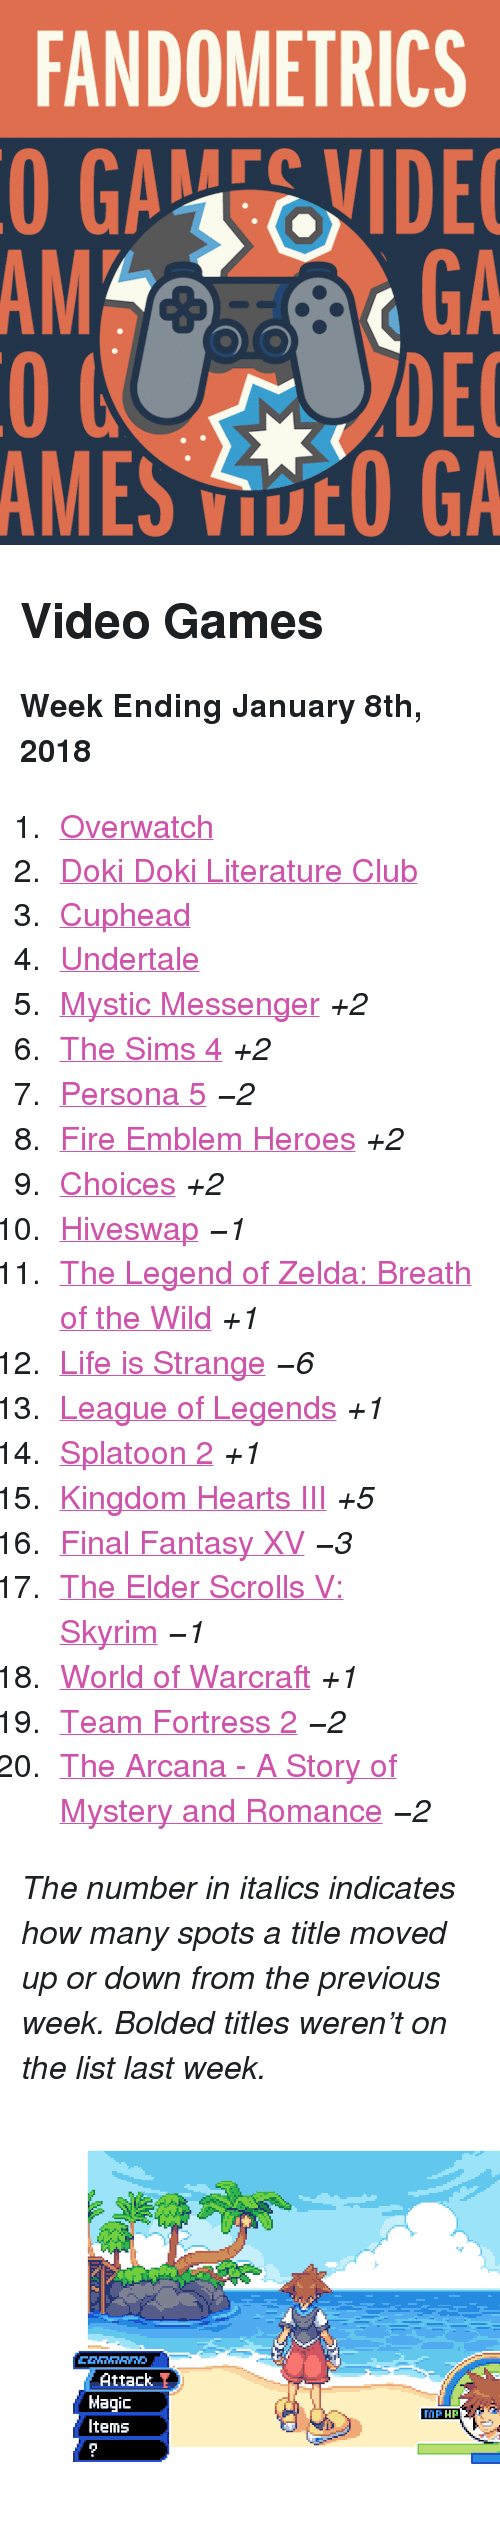 """The Legend Of Zelda Breath Of The Wild: FANDOMETRICS  GAEIDE  GA  DEC  MES DCO GA  AMGA <h2>Video Games</h2><p><b>Week Ending January 8th, 2018</b></p><ol><li><a href=""""http://www.tumblr.com/search/overwatch"""">Overwatch</a></li>  <li><a href=""""http://www.tumblr.com/search/doki%20doki%20literature%20club"""">Doki Doki Literature Club</a></li>  <li><a href=""""http://www.tumblr.com/search/cuphead"""">Cuphead</a></li>  <li><a href=""""http://www.tumblr.com/search/undertale"""">Undertale</a></li>  <li><a href=""""http://www.tumblr.com/search/mystic%20messenger"""">Mystic Messenger</a><i>+2</i></li>  <li><a href=""""http://www.tumblr.com/search/sims%204"""">The Sims 4</a><i>+2</i></li>  <li><a href=""""http://www.tumblr.com/search/persona%205"""">Persona 5</a><i><i>−2</i></i></li>  <li><a href=""""http://www.tumblr.com/search/fire%20emblem%20heroes"""">Fire Emblem Heroes</a><i>+2</i></li>  <li><a href=""""http://www.tumblr.com/search/playchoices"""">Choices</a><i>+2</i></li>  <li><a href=""""http://www.tumblr.com/search/hiveswap"""">Hiveswap</a><i><i>−1</i></i></li>  <li><a href=""""http://www.tumblr.com/search/breath%20of%20the%20wild"""">The Legend of Zelda: Breath of the Wild</a><i>+1</i></li>  <li><a href=""""http://www.tumblr.com/search/life%20is%20strange"""">Life is Strange</a><i><i>−6</i></i></li>  <li><a href=""""http://www.tumblr.com/search/league%20of%20legends"""">League of Legends</a><i>+1</i></li>  <li><a href=""""http://www.tumblr.com/search/splatoon"""">Splatoon 2</a><i>+1</i></li>  <li><a href=""""http://www.tumblr.com/search/kingdom%20hearts"""">Kingdom Hearts III</a><i>+5</i></li>  <li><a href=""""http://www.tumblr.com/search/final%20fantasy%20xv"""">Final Fantasy XV</a><i><i>−3</i></i></li>  <li><a href=""""http://www.tumblr.com/search/skyrim"""">The Elder Scrolls V: Skyrim</a><i><i>−1</i></i></li>  <li><a href=""""http://www.tumblr.com/search/world%20of%20warcraft"""">World of Warcraft</a><i>+1</i></li>  <li><a href=""""http://www.tumblr.com/search/tf2"""">Team Fortress 2</a><i><i>−2</i></i></li>  <li><a href=""""http://www.tumblr.com/search/the%20arcana"""">The"""